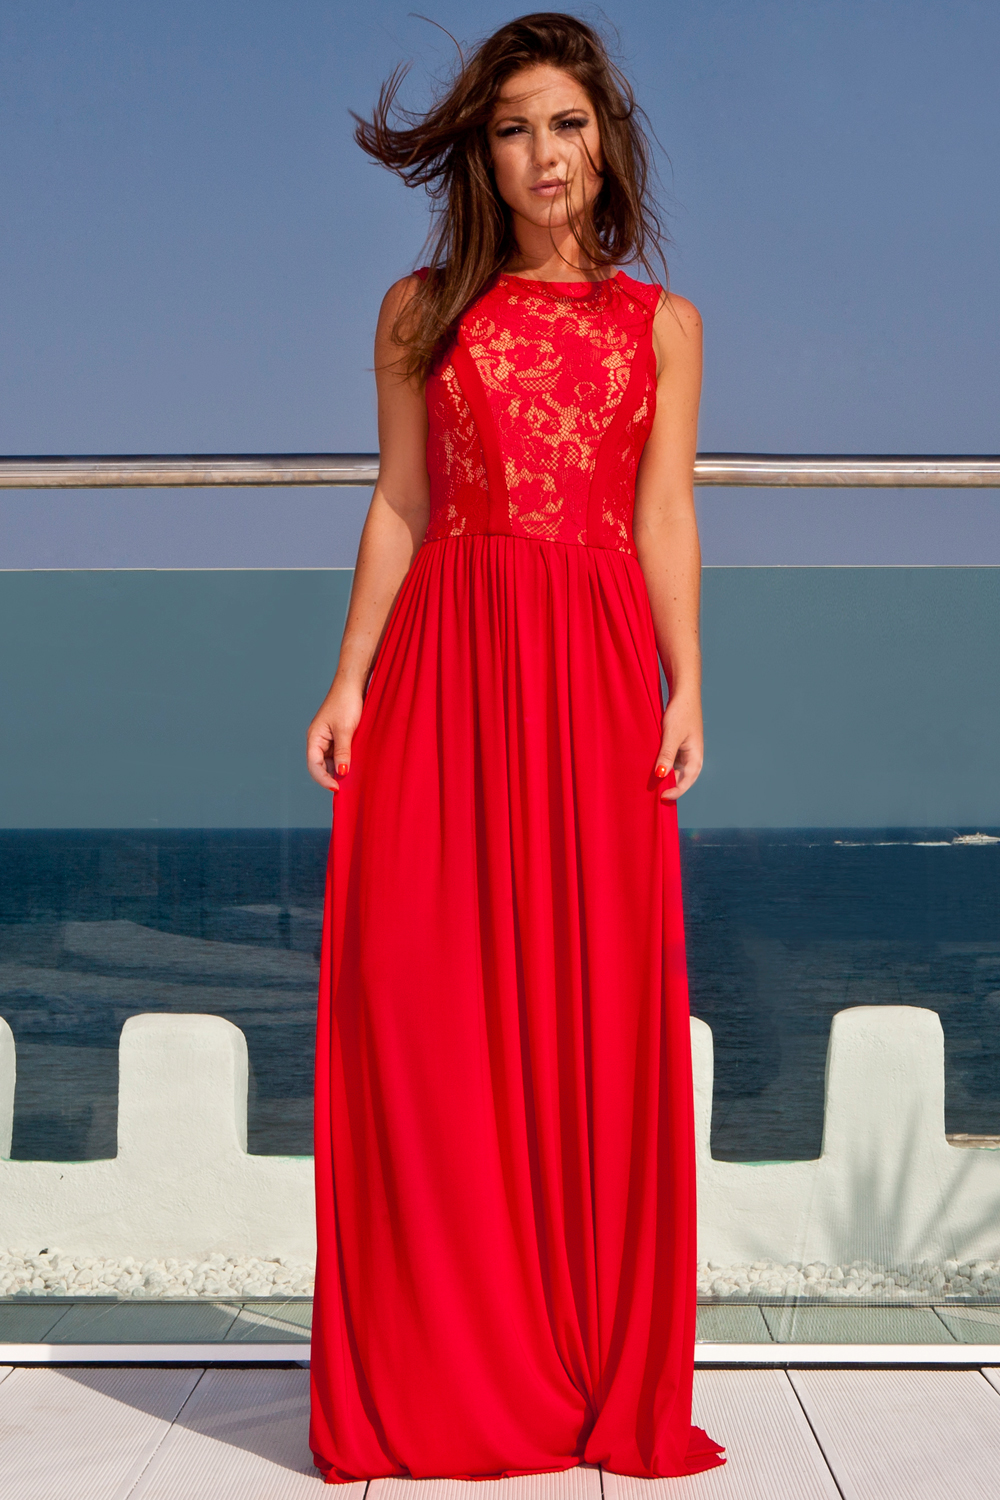 Gorgeous Couture now available on Girl Meets Dress | Girl Meets Dress